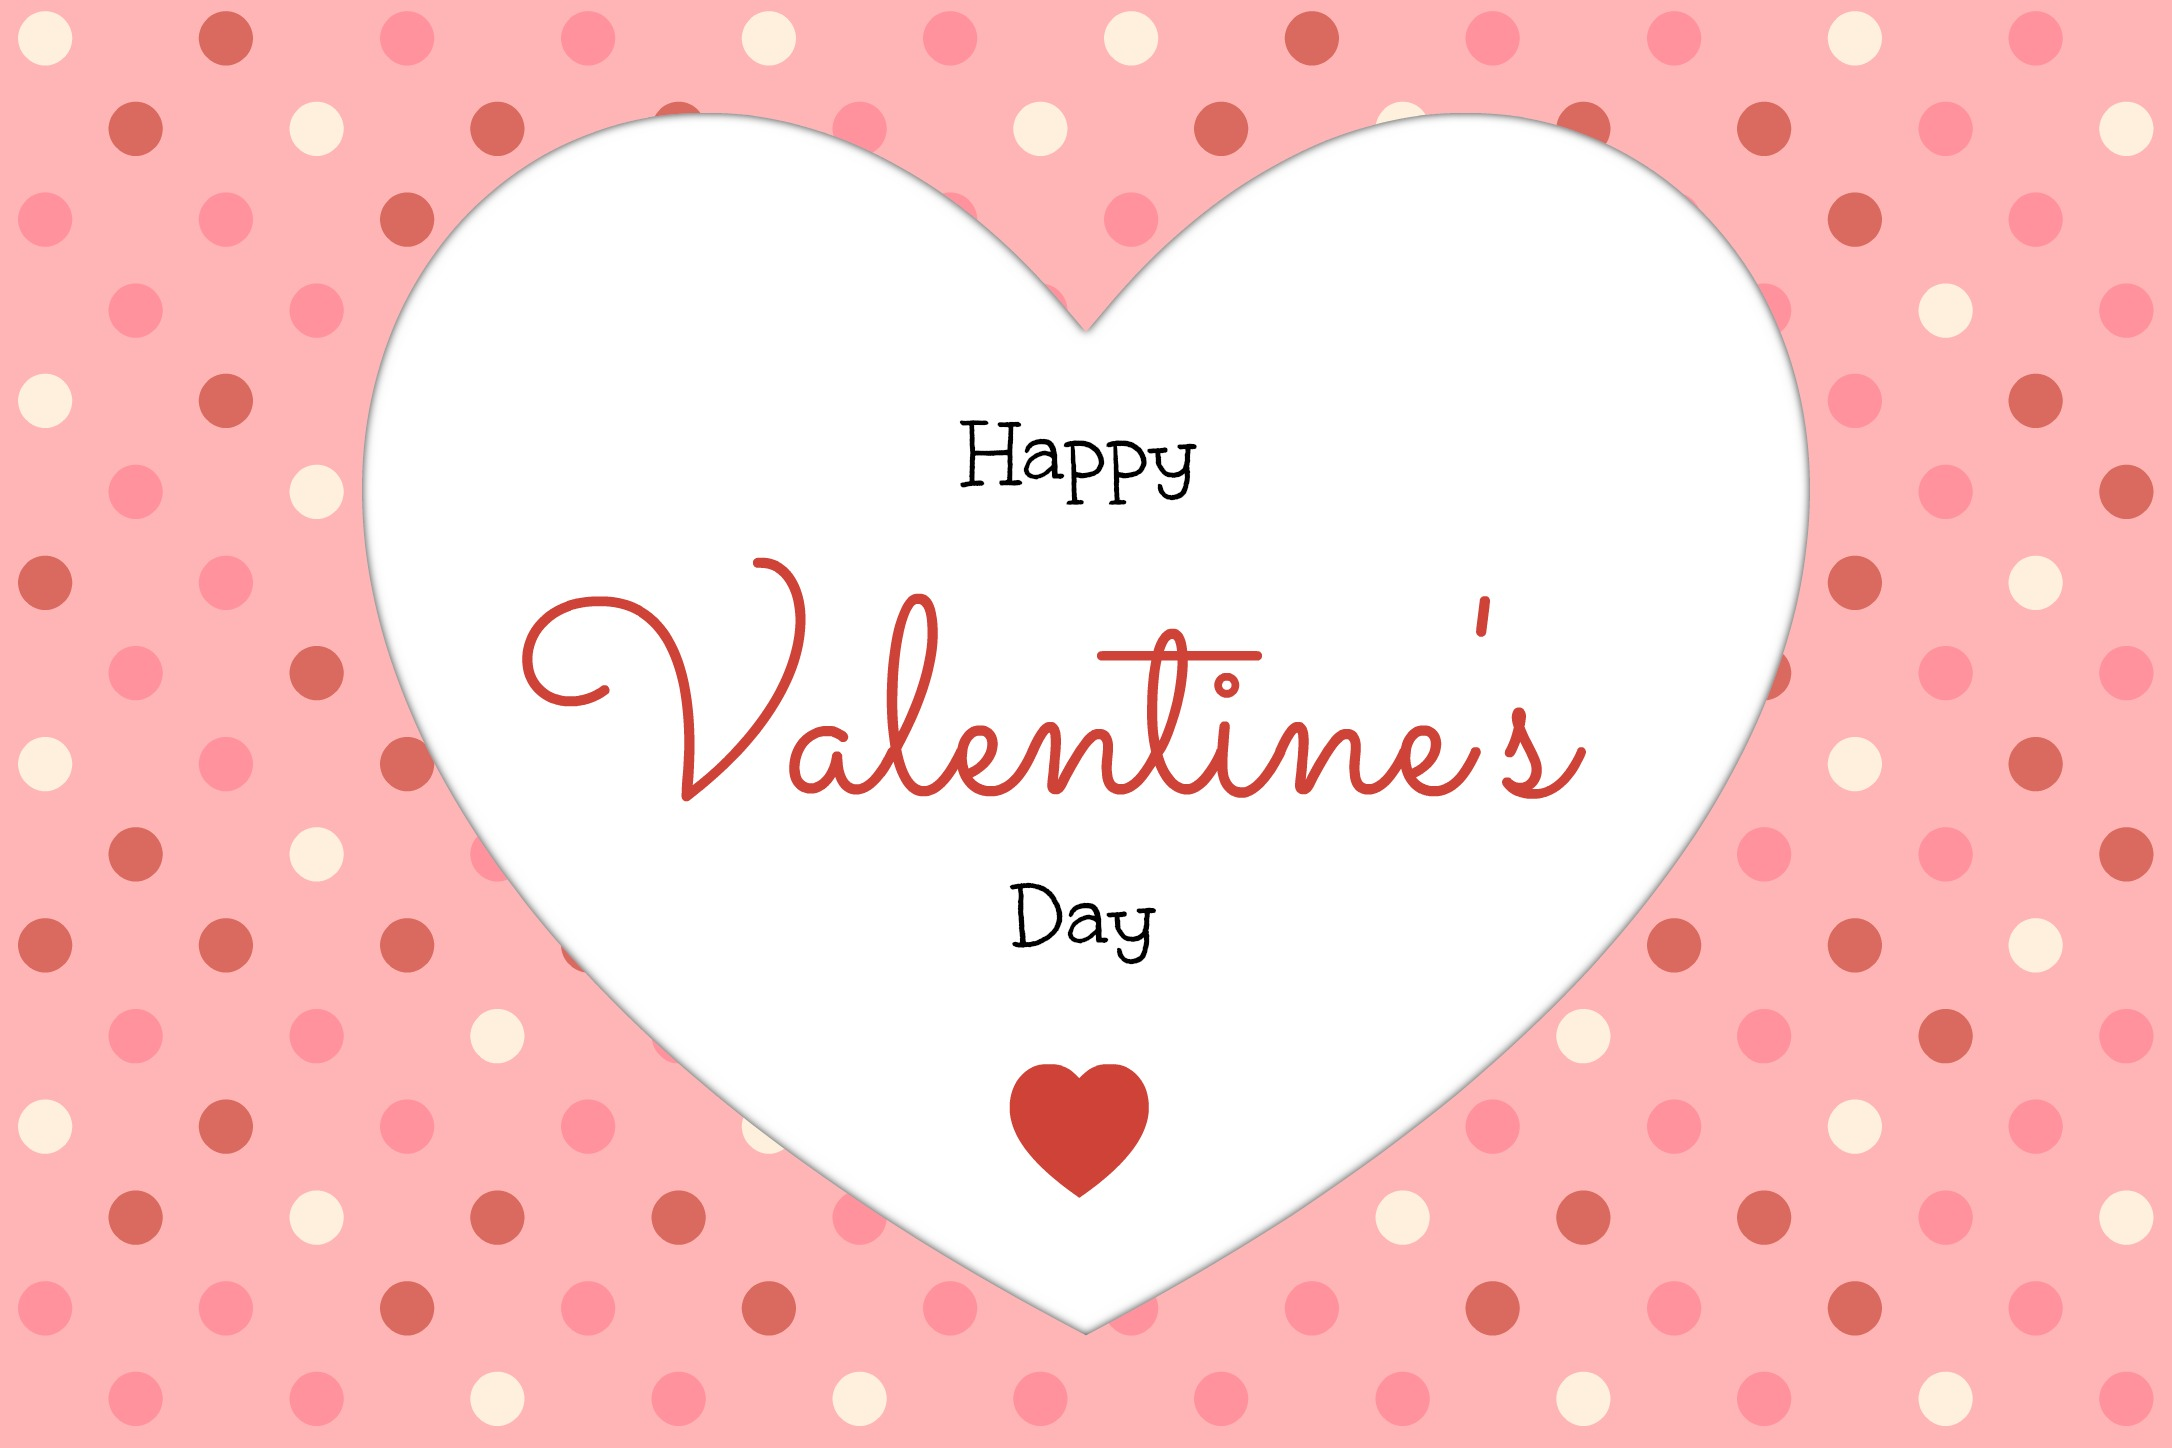 Valentines Day 2015 Greetings For Girl Friend Rose Day Greetings